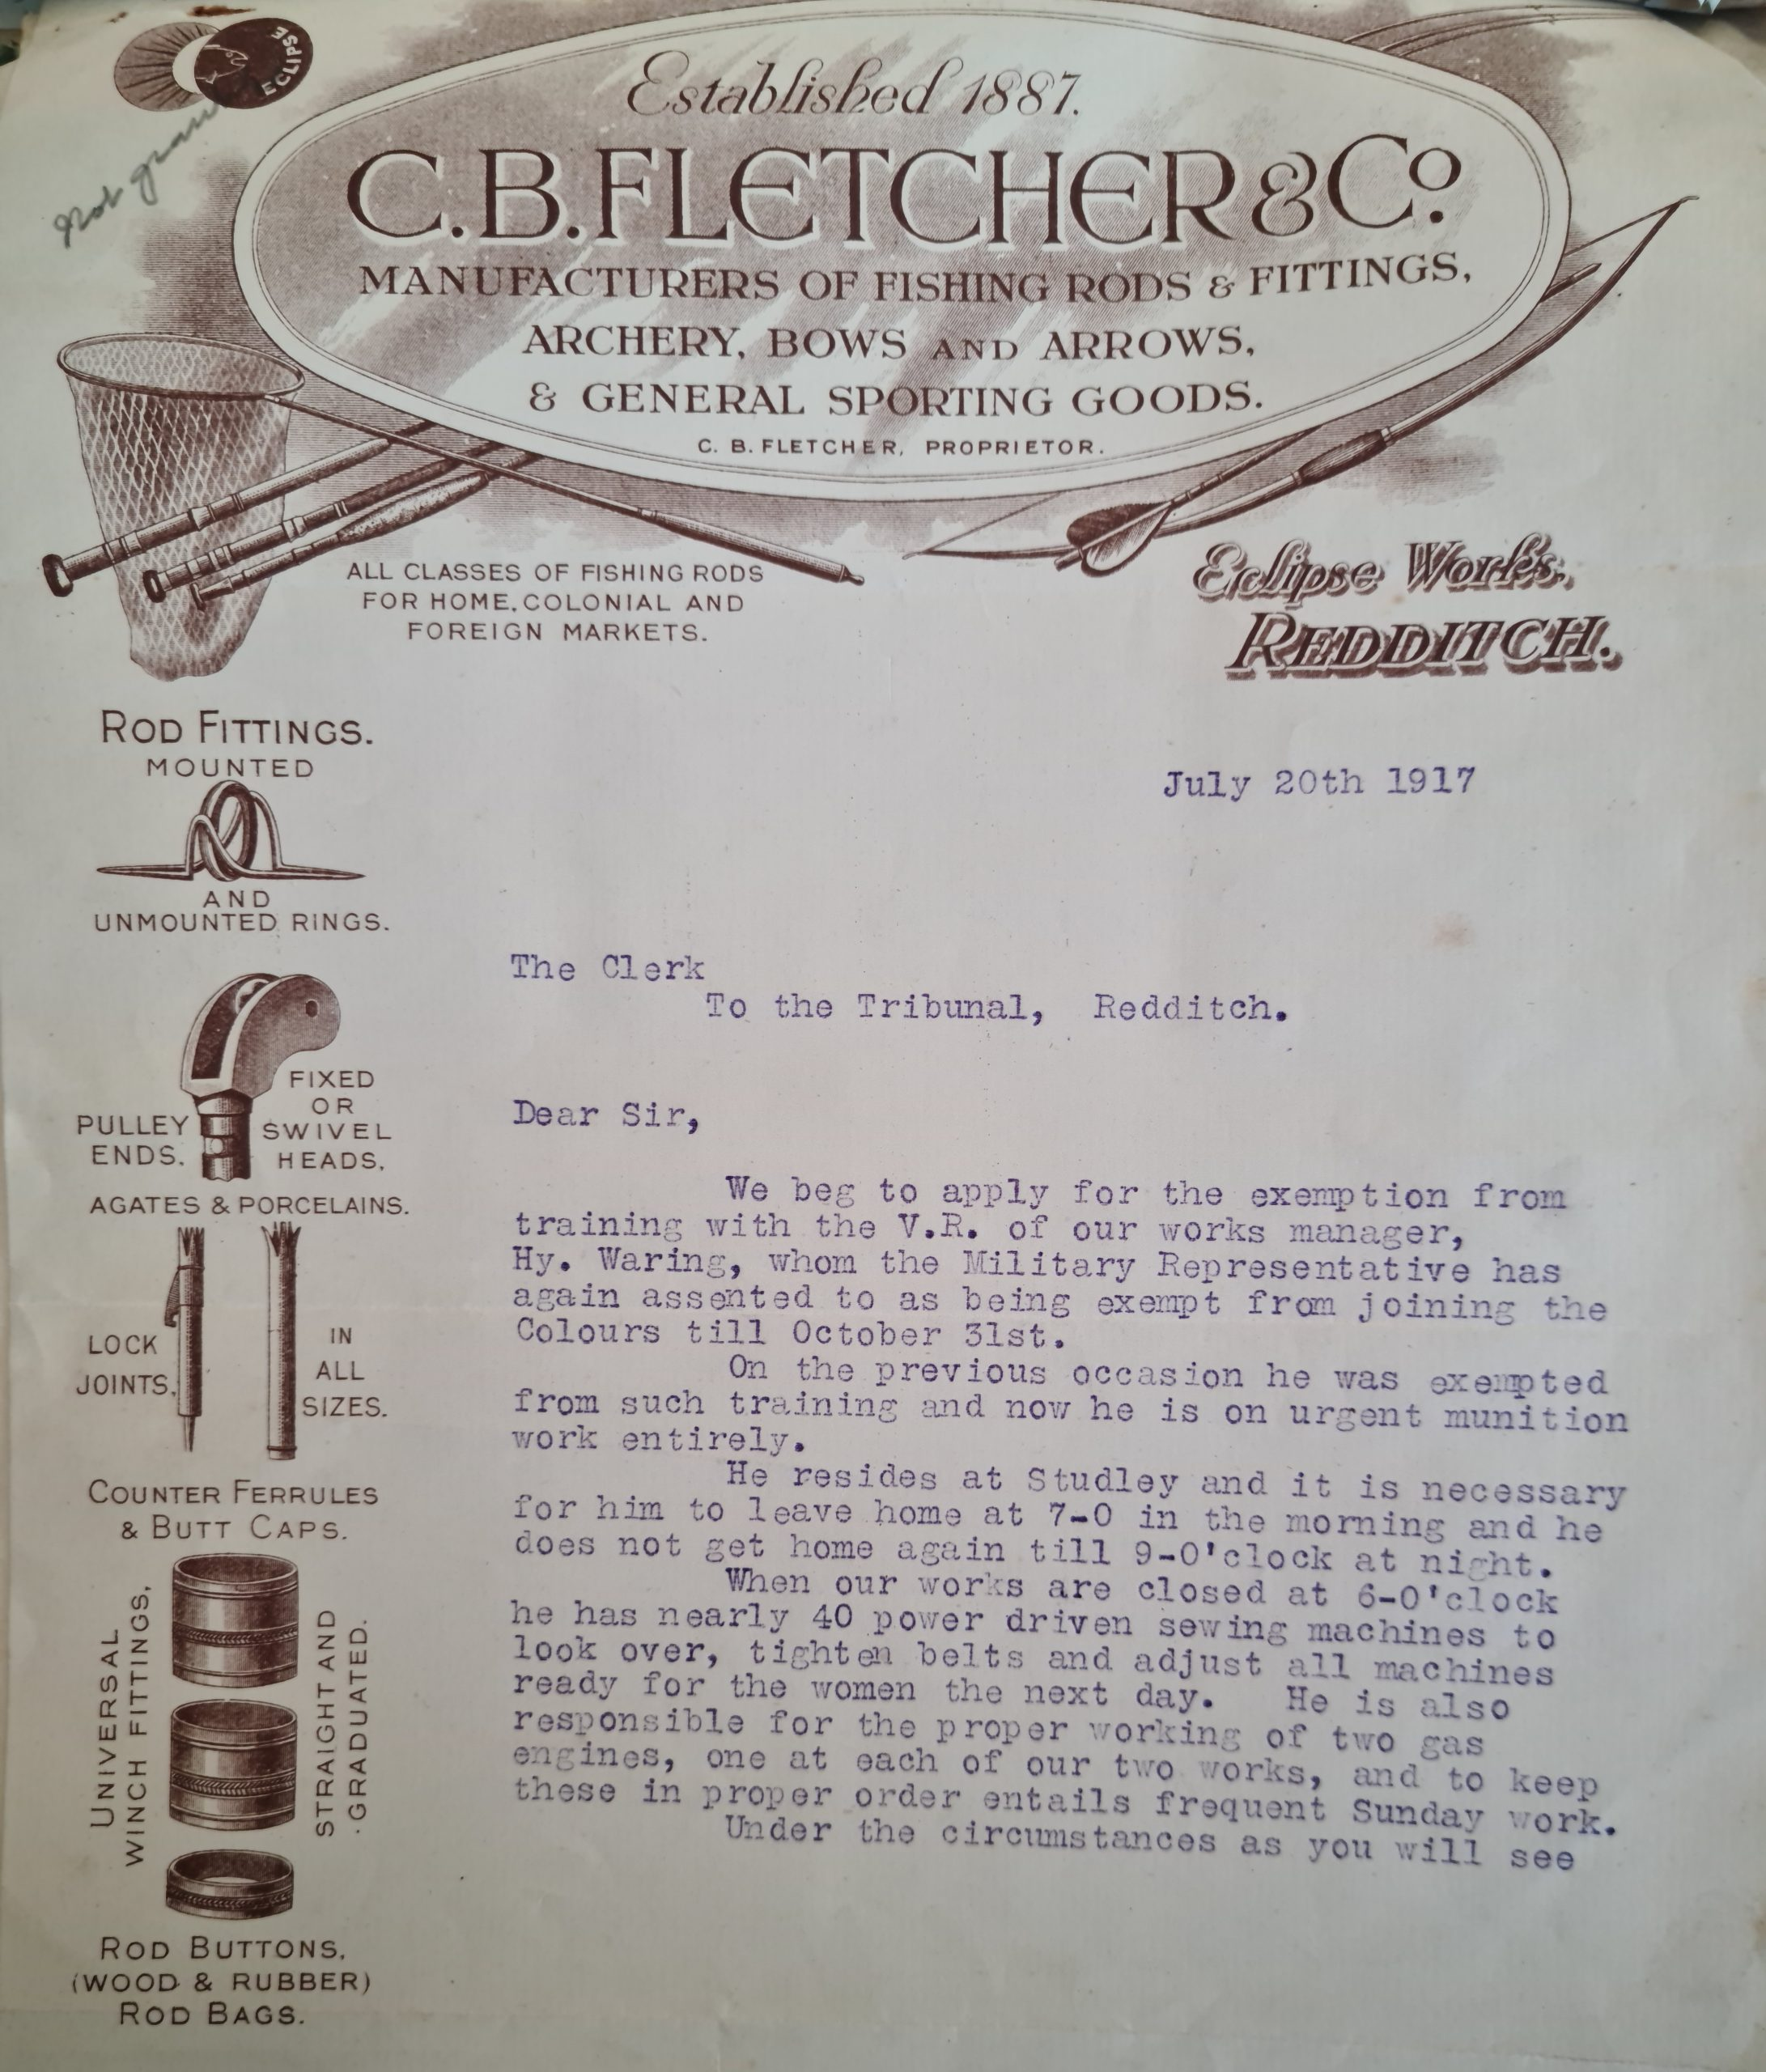 Worcestershire Archive and Archaeology Service BA10917/33(i)/1: Letter dated July 20, 1917